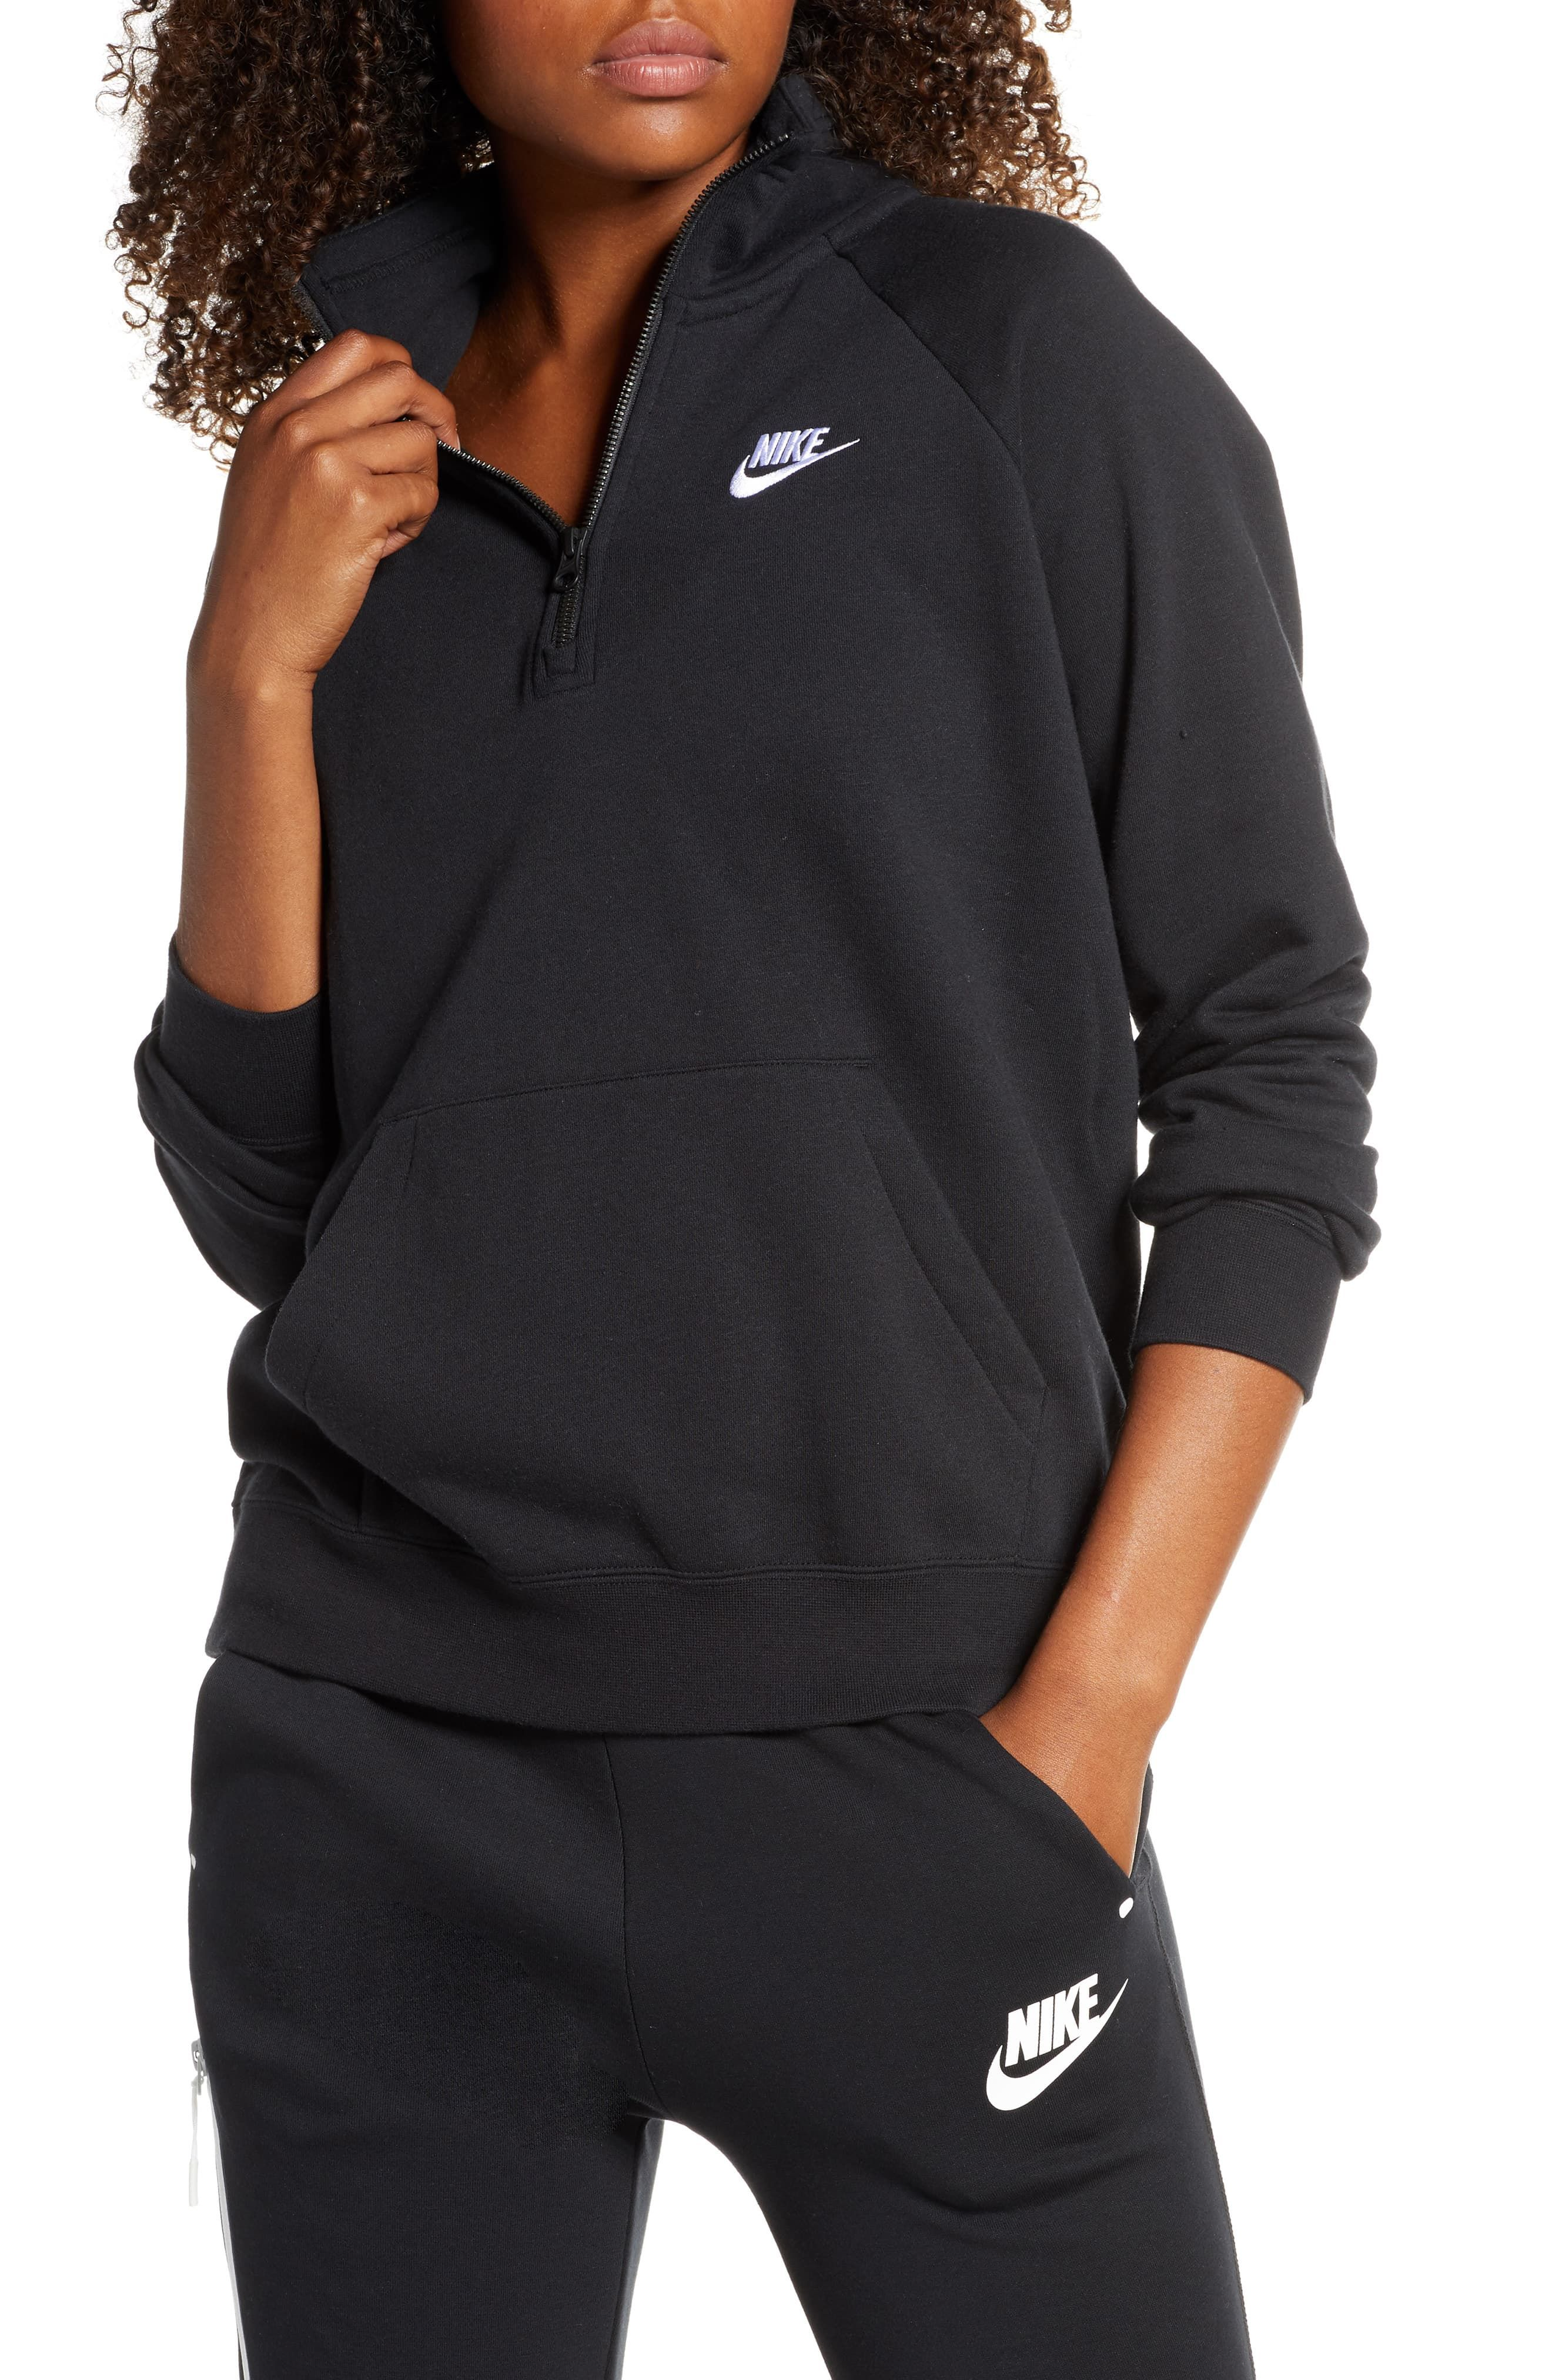 The North Face Sweatshirts Outlet | Up to 70% off on